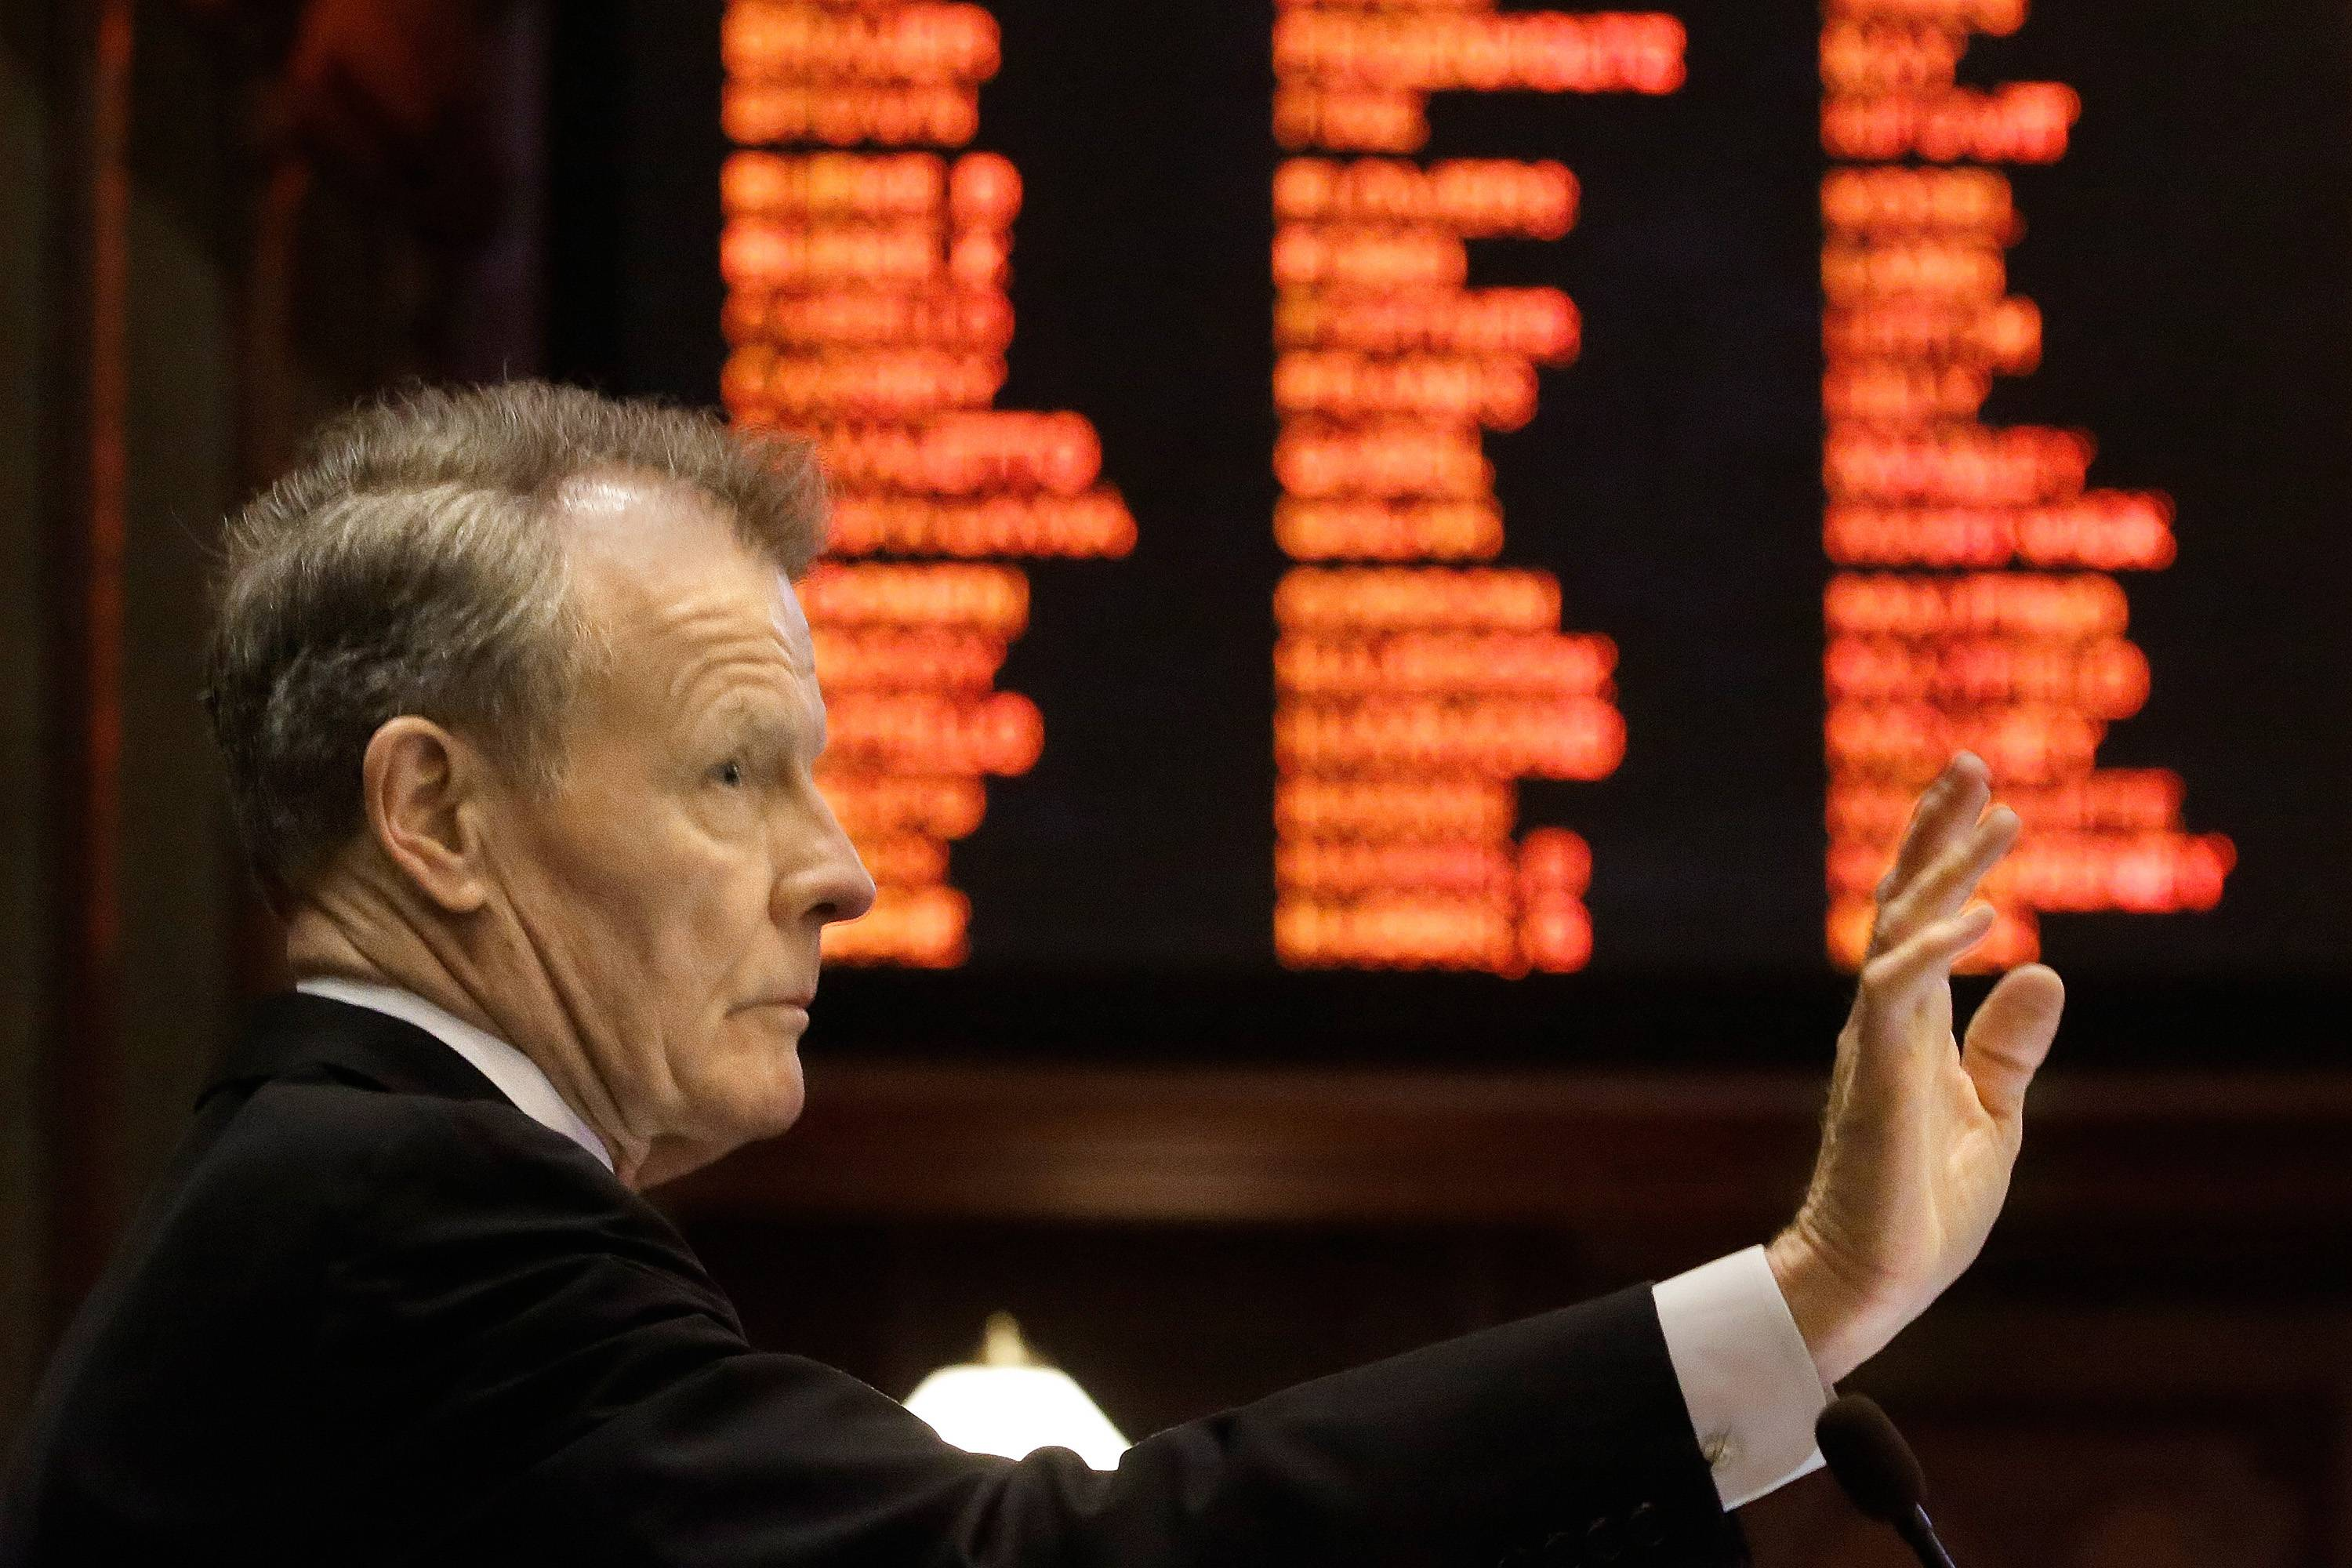 In this photo taken on Monday, llinois Speaker of the House Michael Madigan, a Chicago Democrat, speaks to lawmakers while on the House floor during session at the Illinois State Capitol in Springfield, Ill. The Illinoise House has voted in favor of putting an advisory referendum question on the ballot on raising the minimum wage.